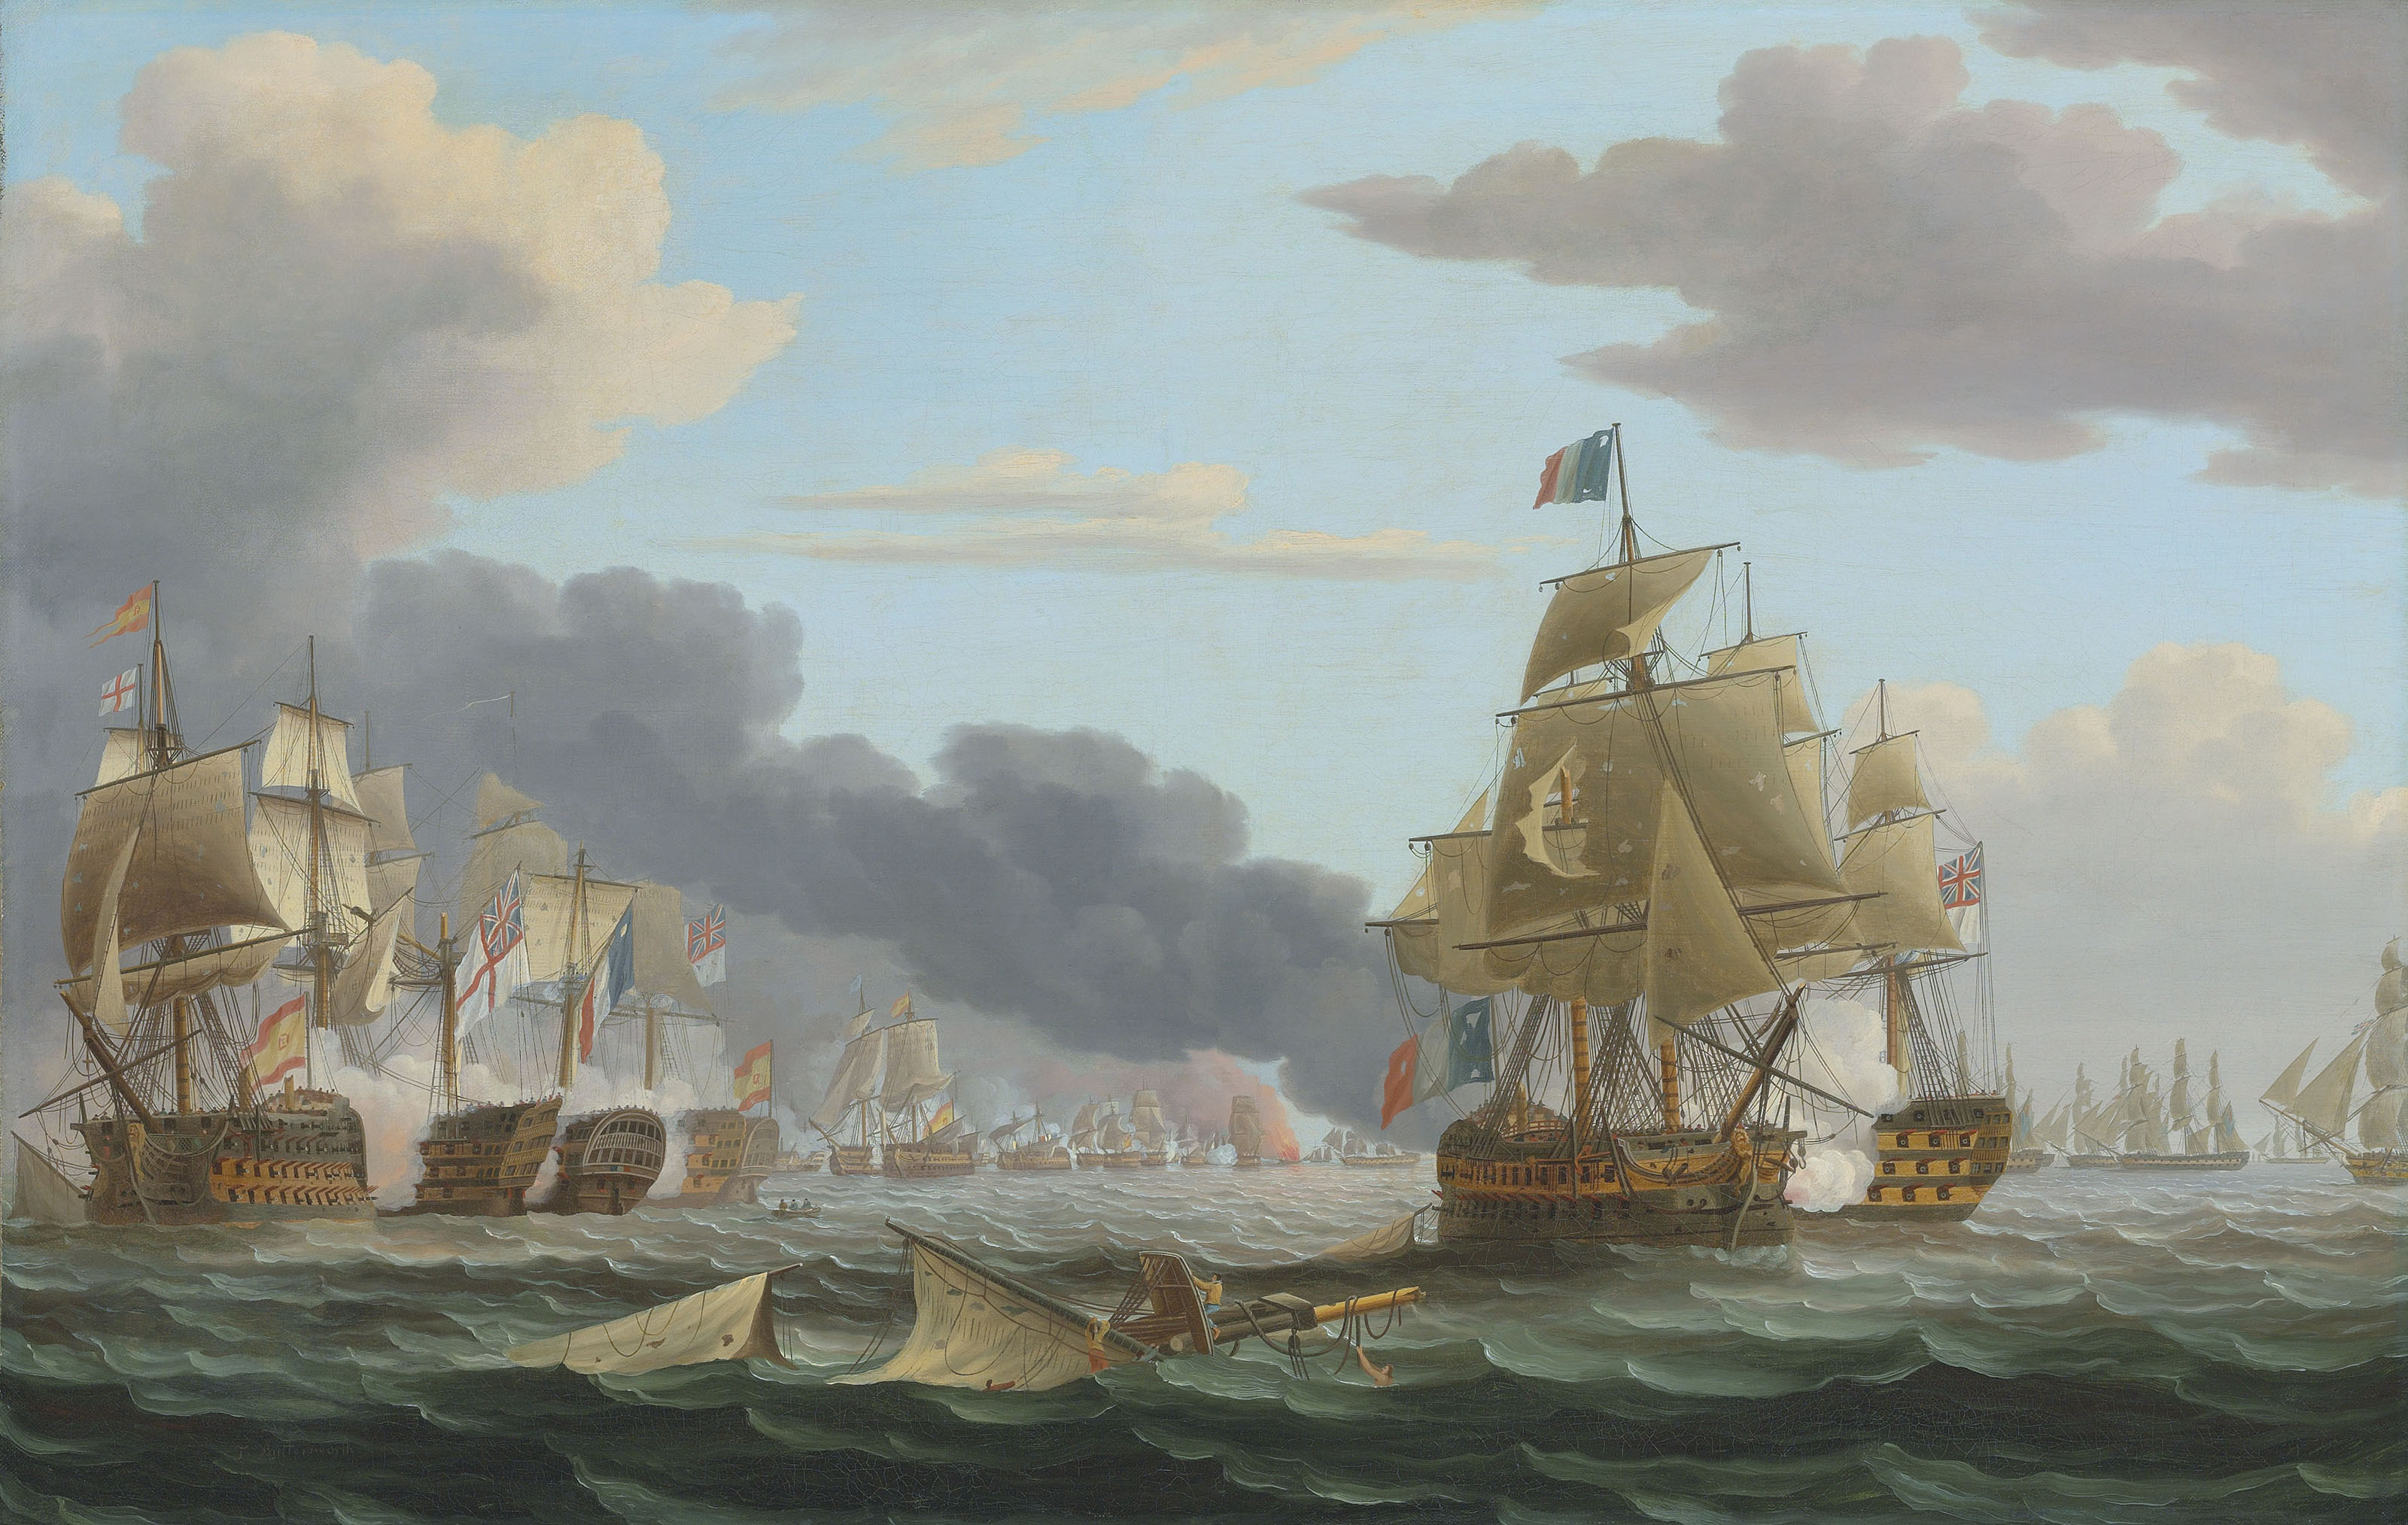 The Battle of Trafalgar, 21 October 1805: the height of the action